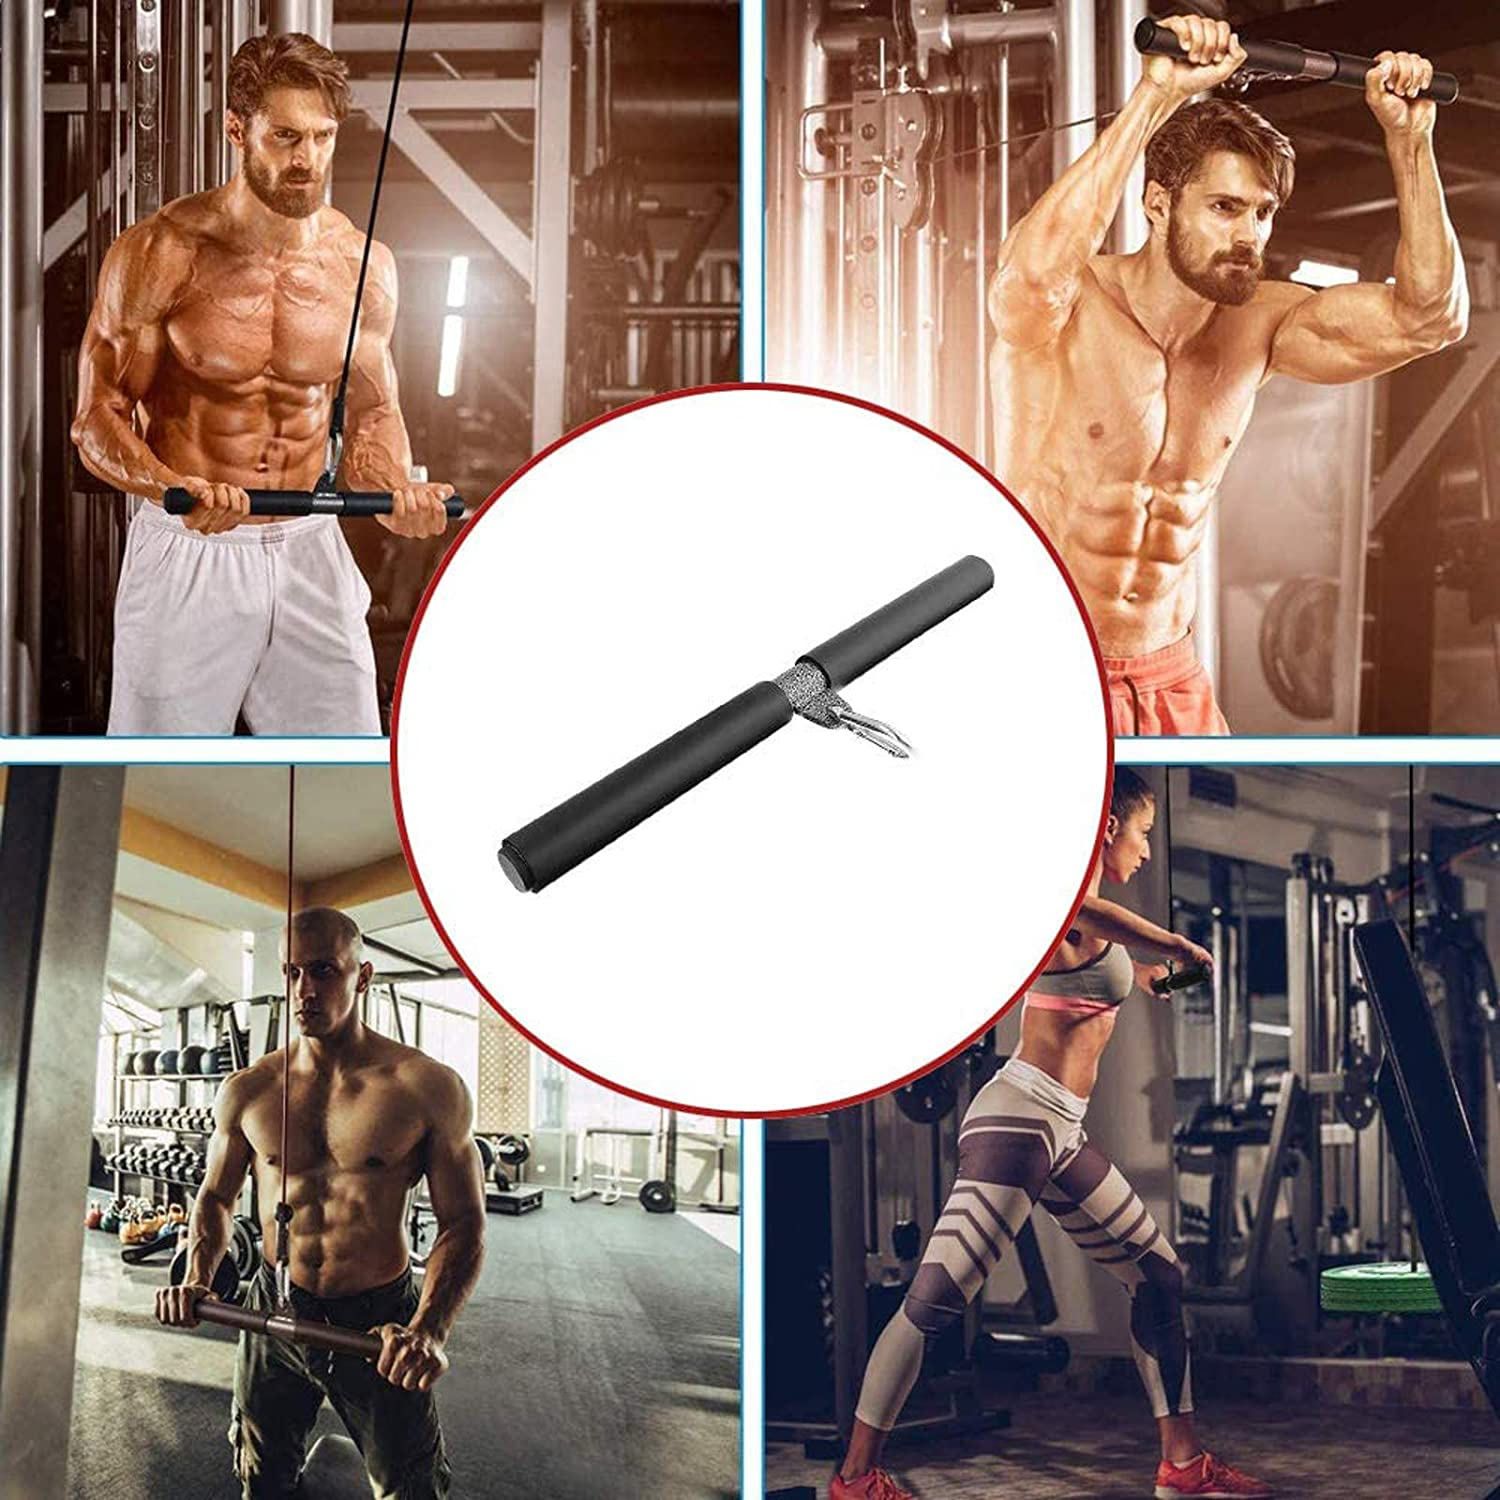 Fitness Workout System 16inch RUNYA Straight Bar Cable Attachment Bicep Pull Bar Weight Machine Accessories for Home Gym Cable Machines